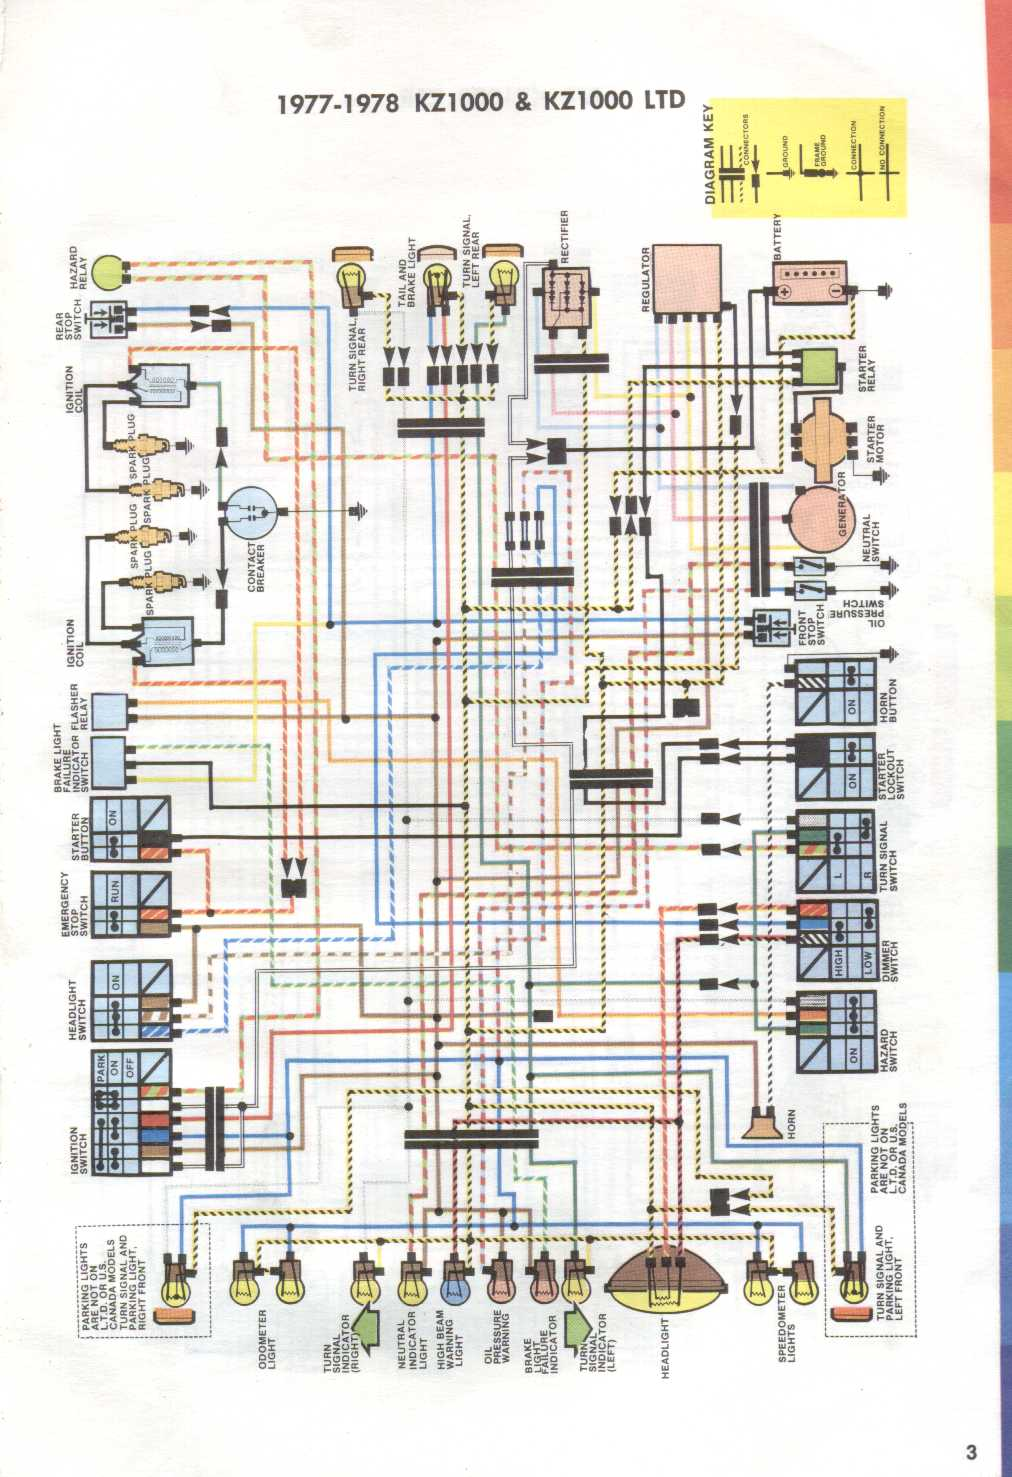 electrical evan fell motorcycle worksevan fell motorcycle works wiring diagram